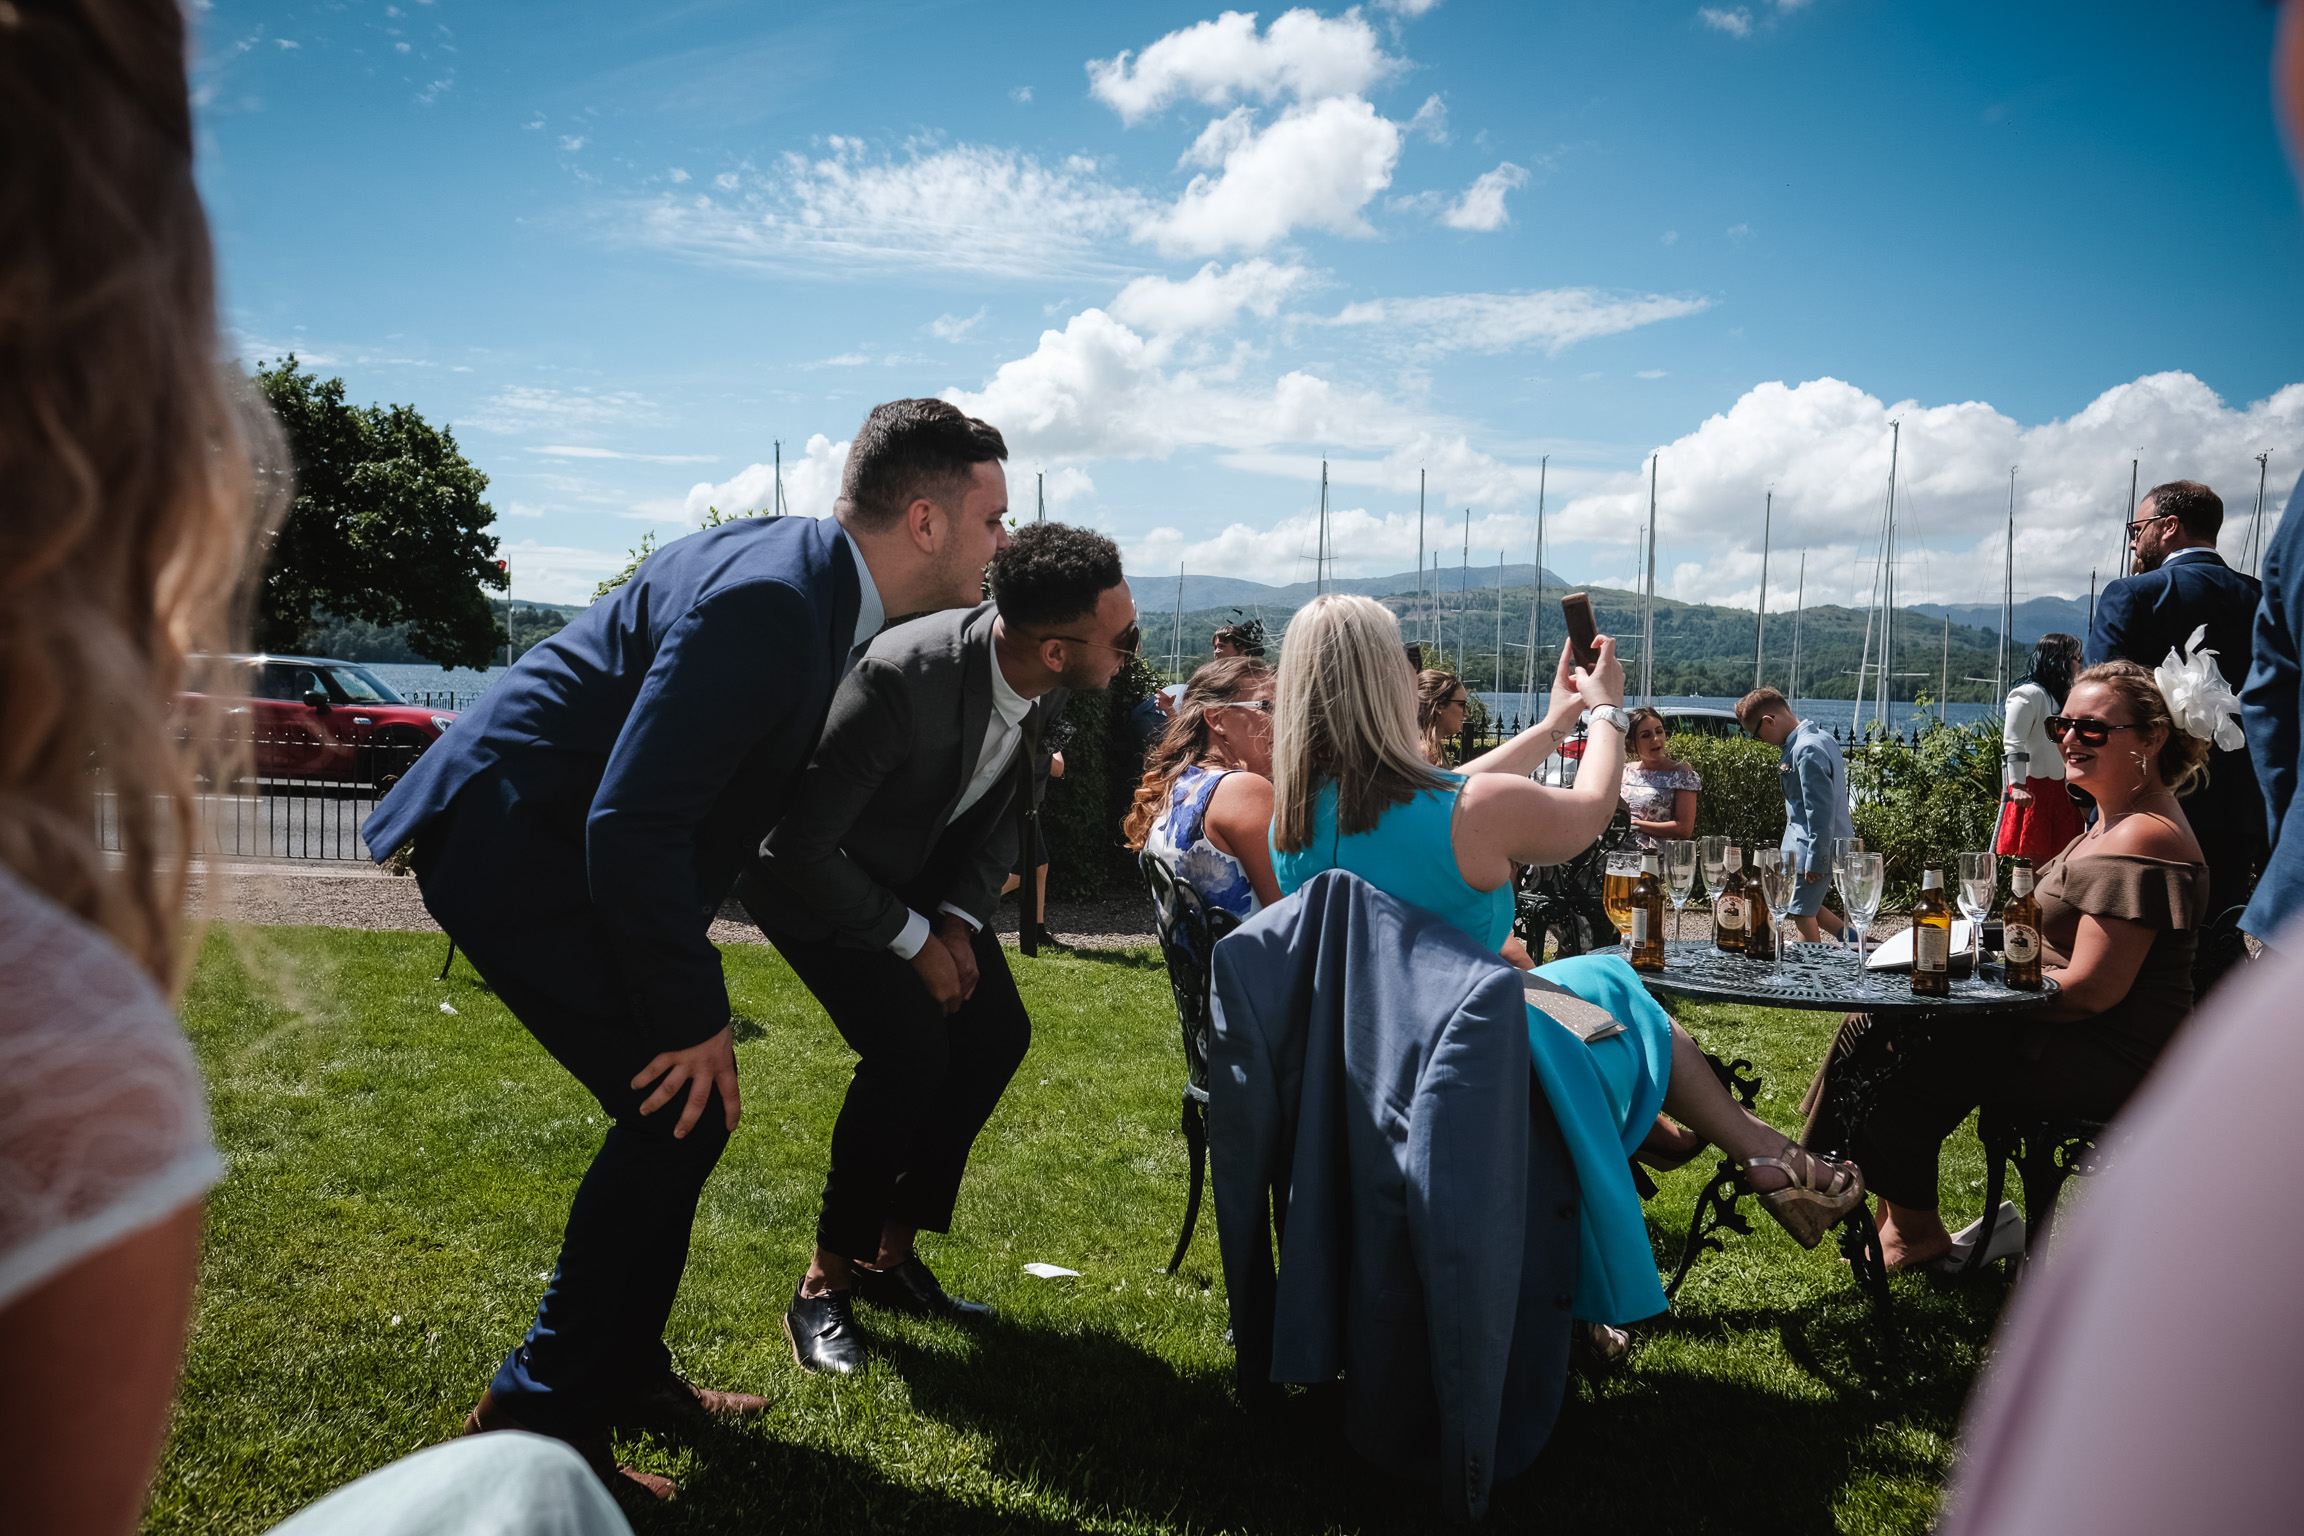 Low wood bay wedding photographer in widermere documentry wedding photography north west cumbria (53 of 131).jpg